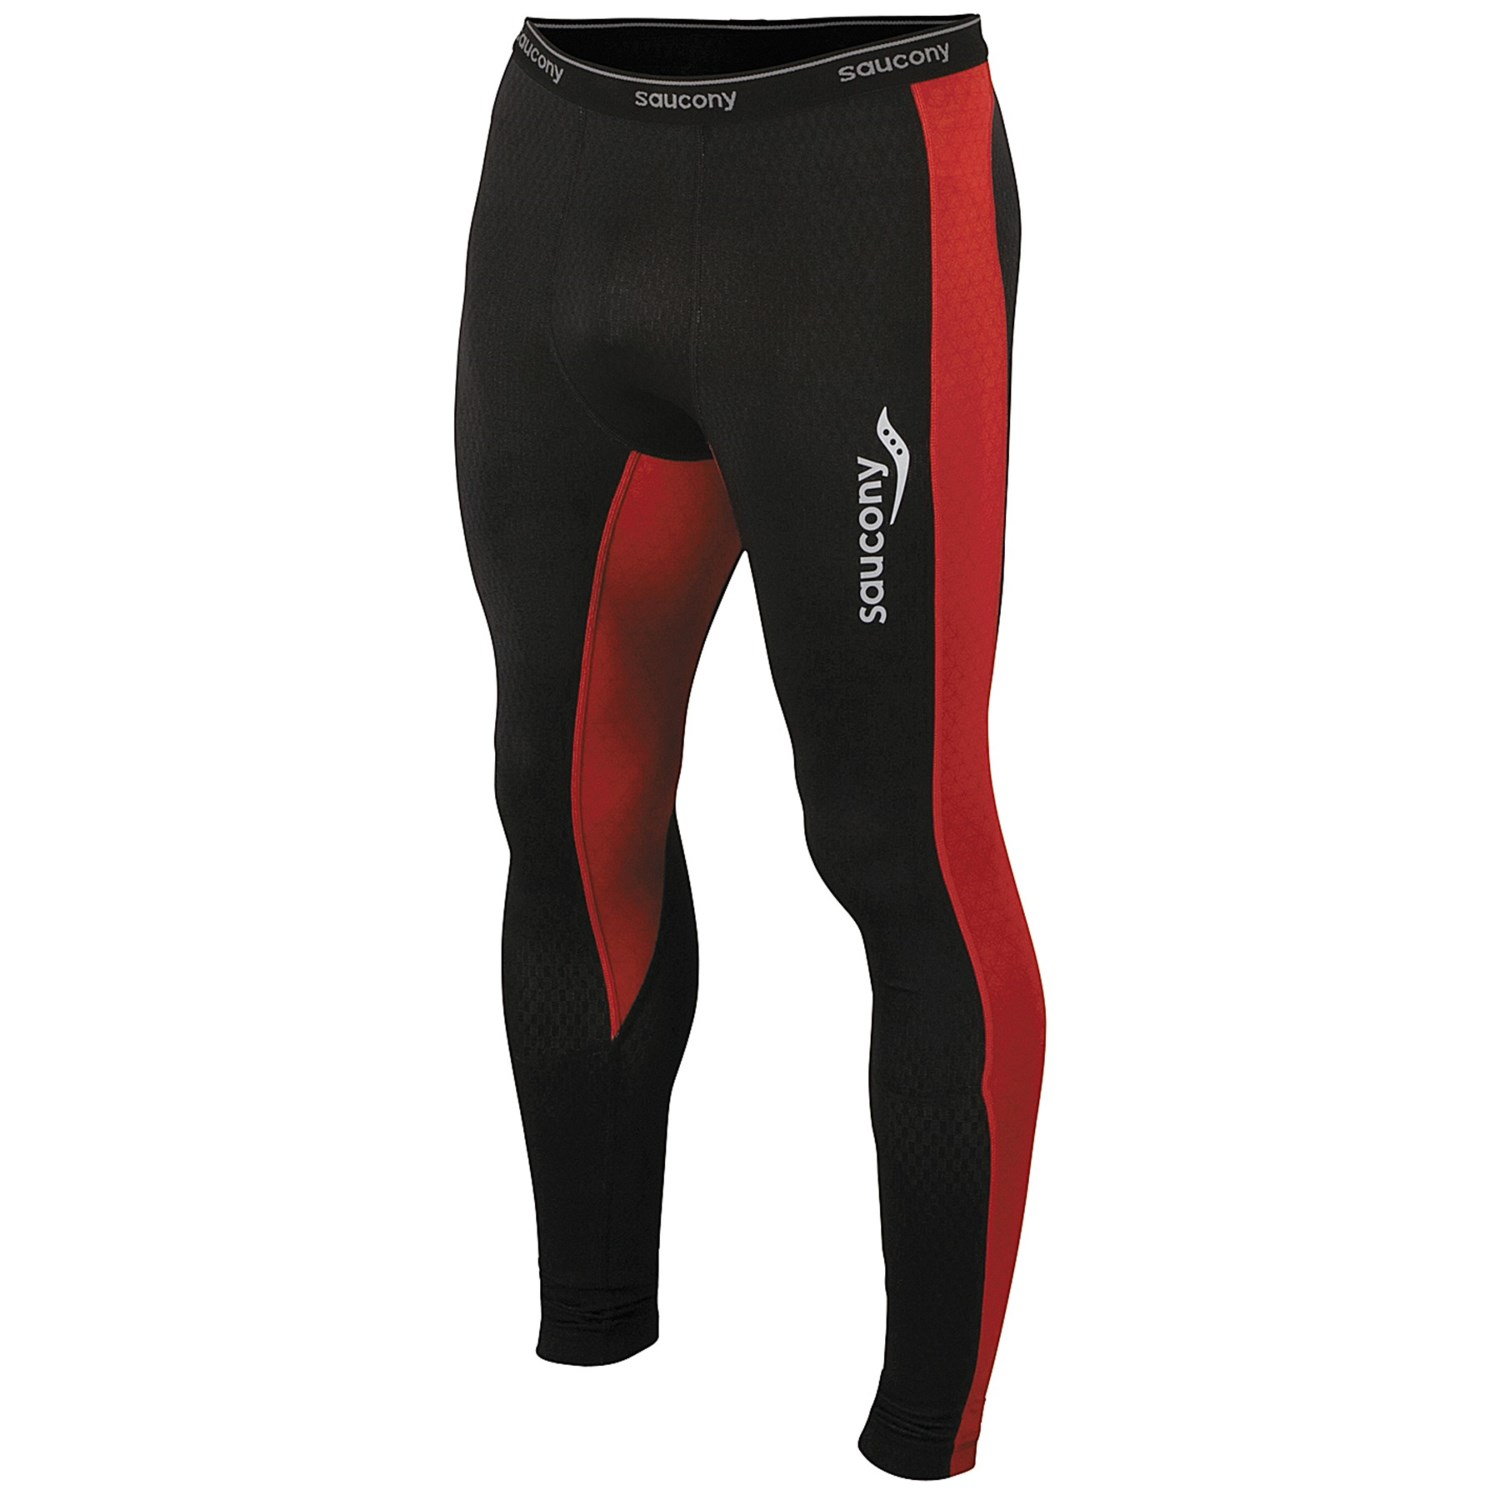 829f60fcc4 Saucony Amp Pro2 Recovery Compression Tights (For Men) 5762D 45 on ...